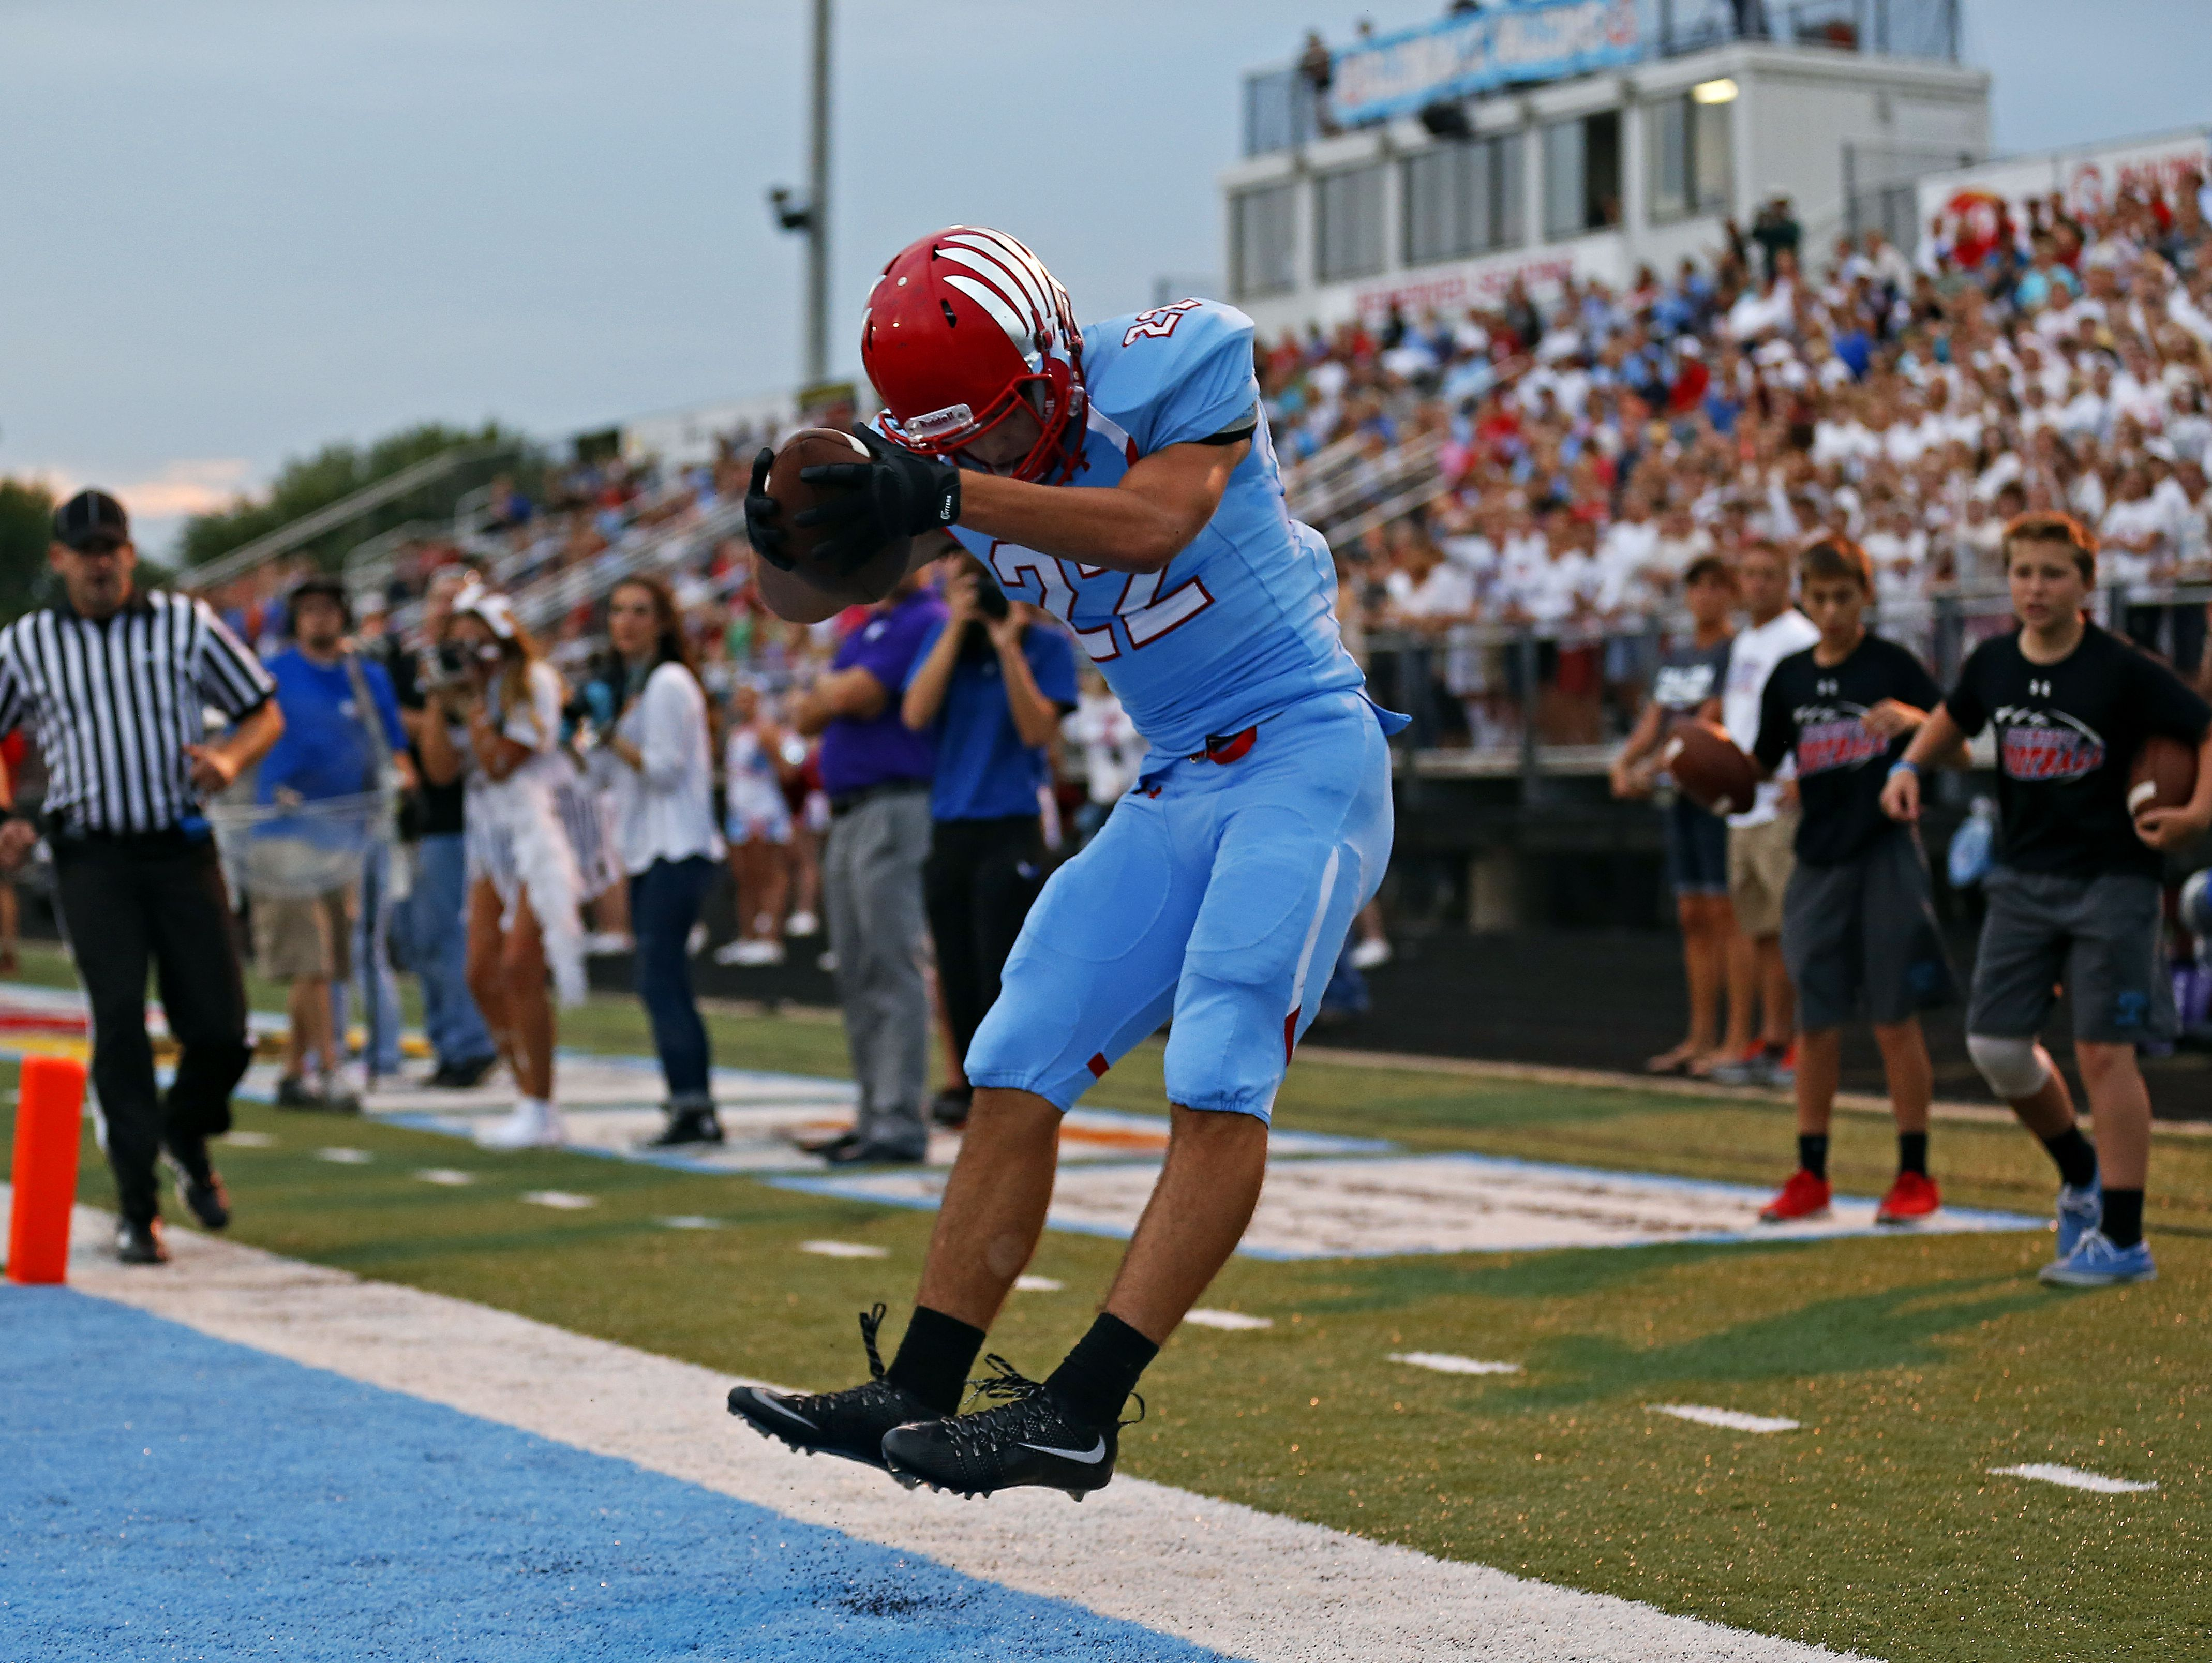 Glendale High School wide receiver Luke Montgomery (22) catches a touchdown pass during first quarter action of the Falcons' game against Hillcrest High School at Lowe Stadium in Springfield, Mo. on Aug. 28, 2015.